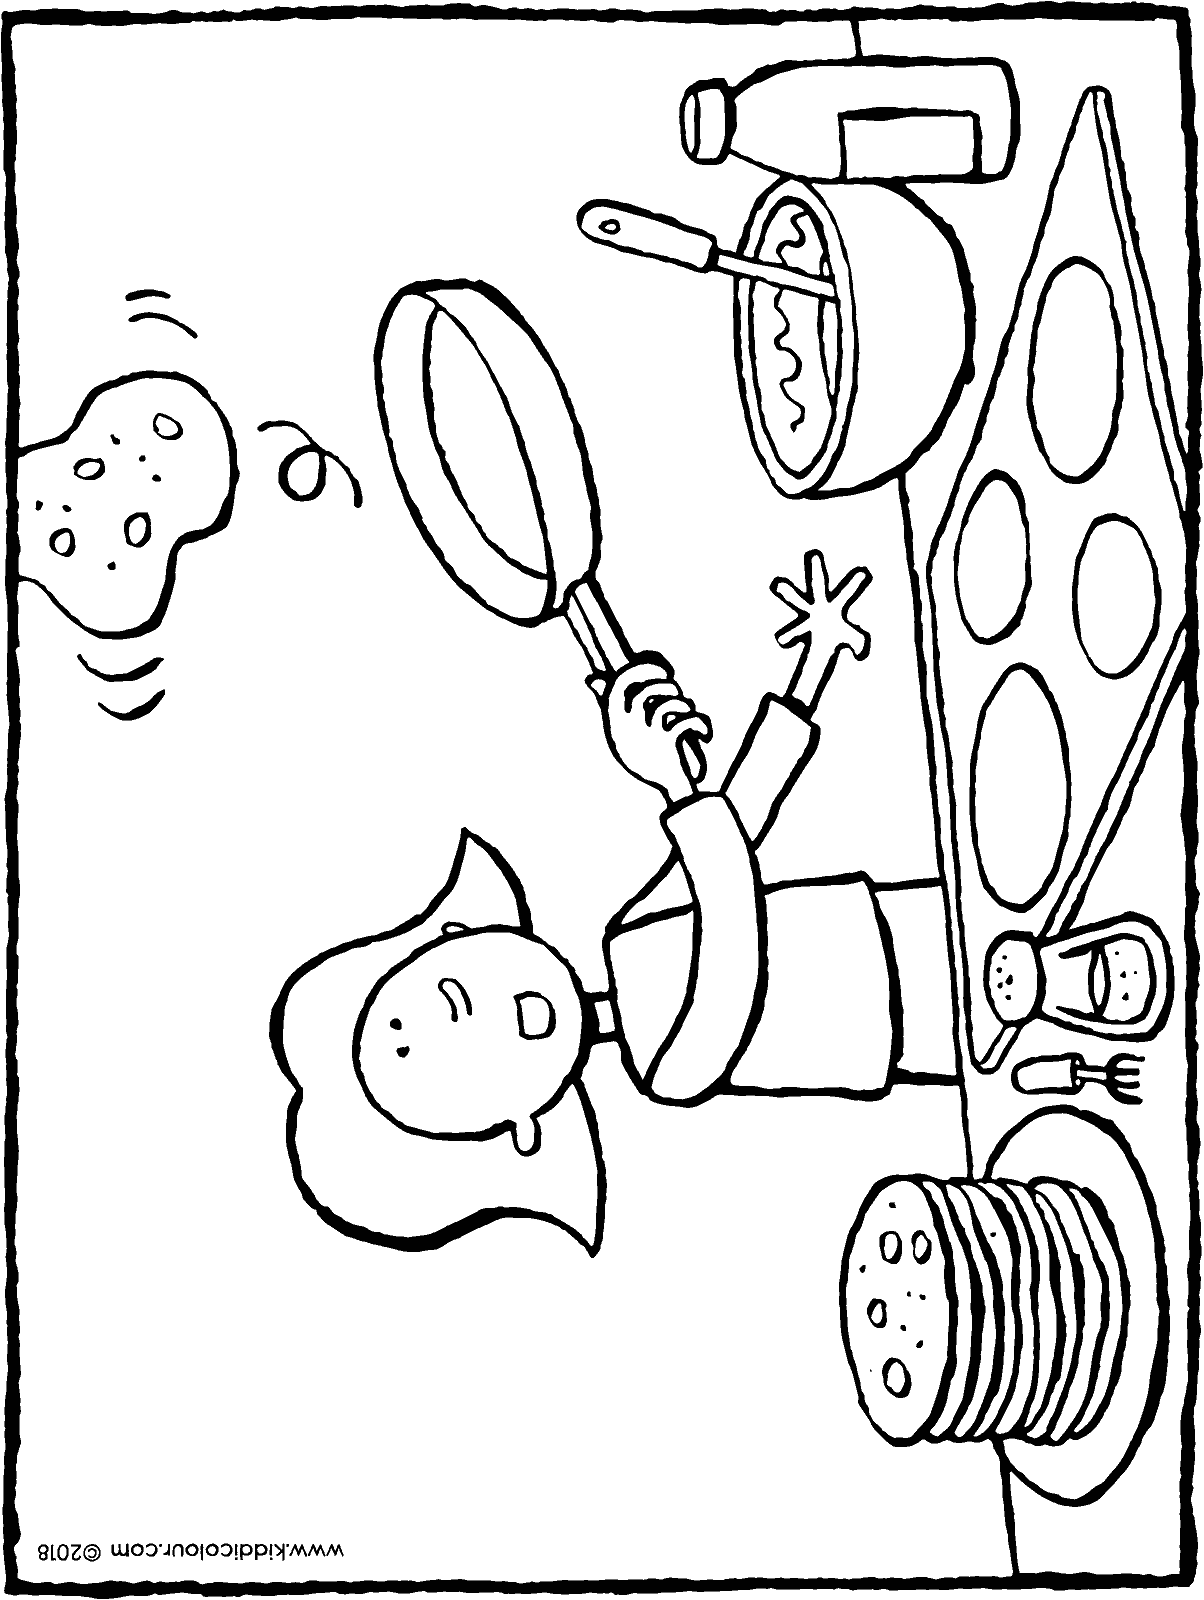 Emma baking pancakes colouring page drawing picture 01H